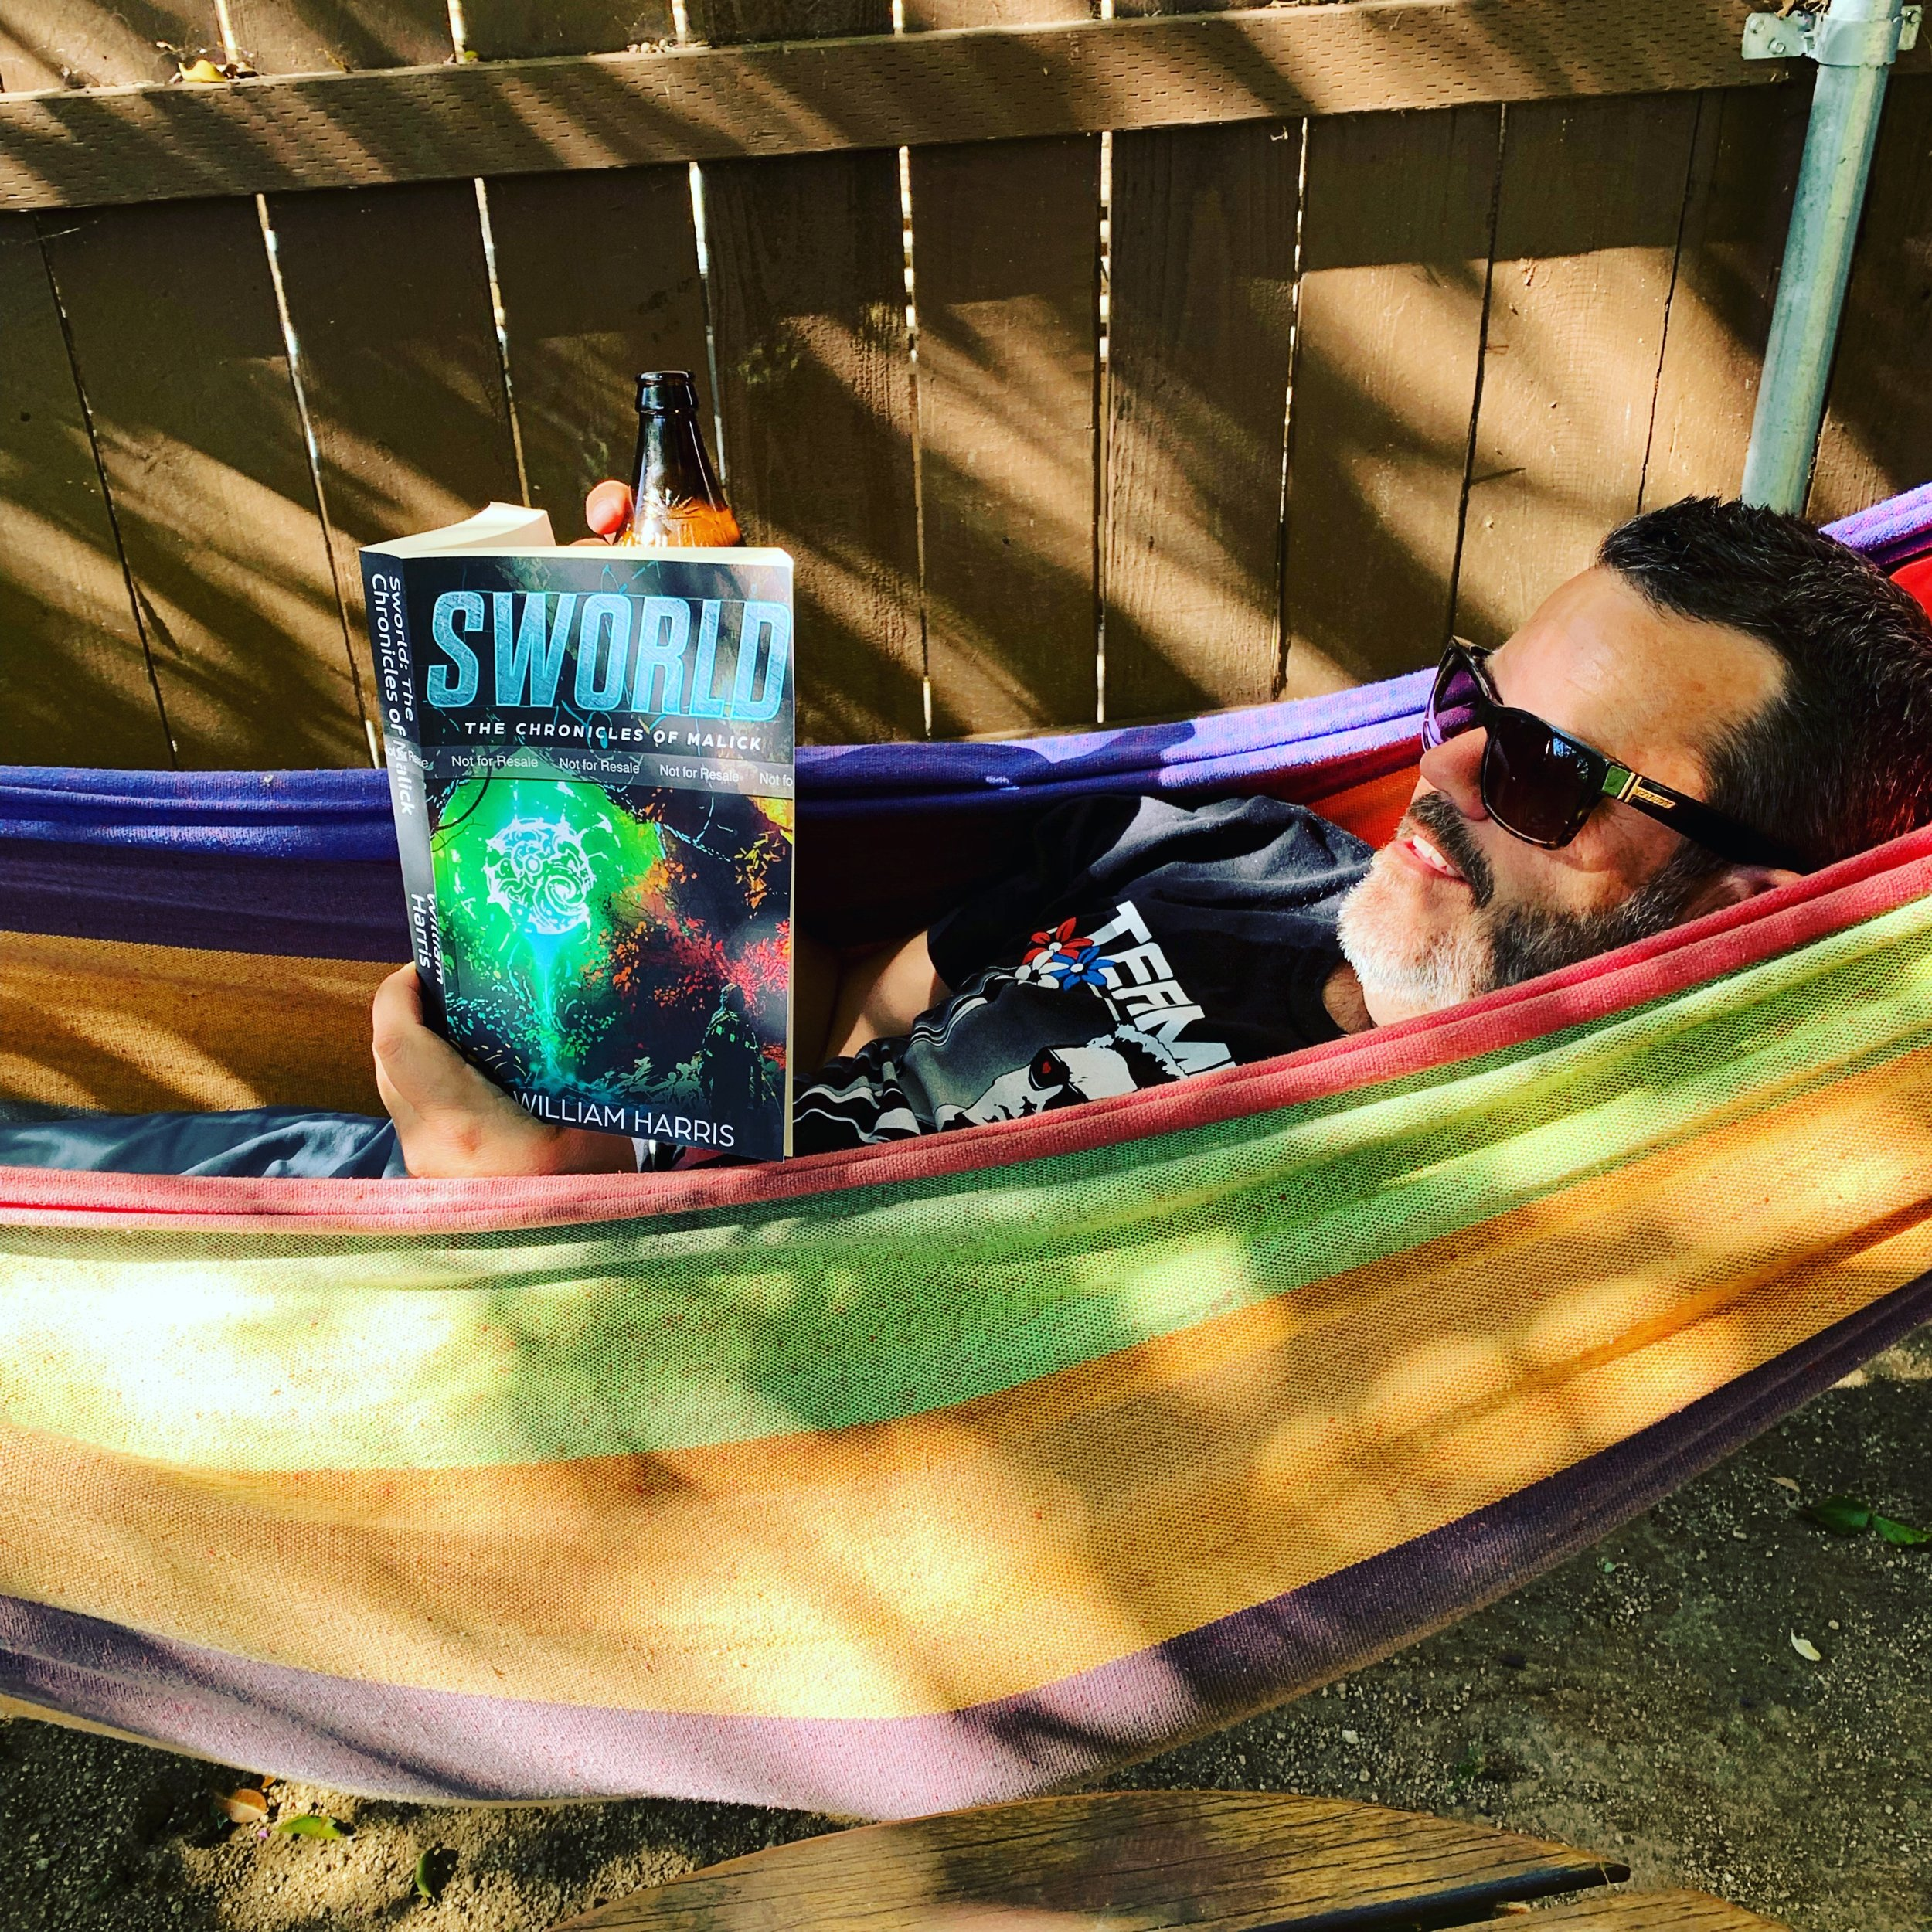 Sworld is great in a hammock